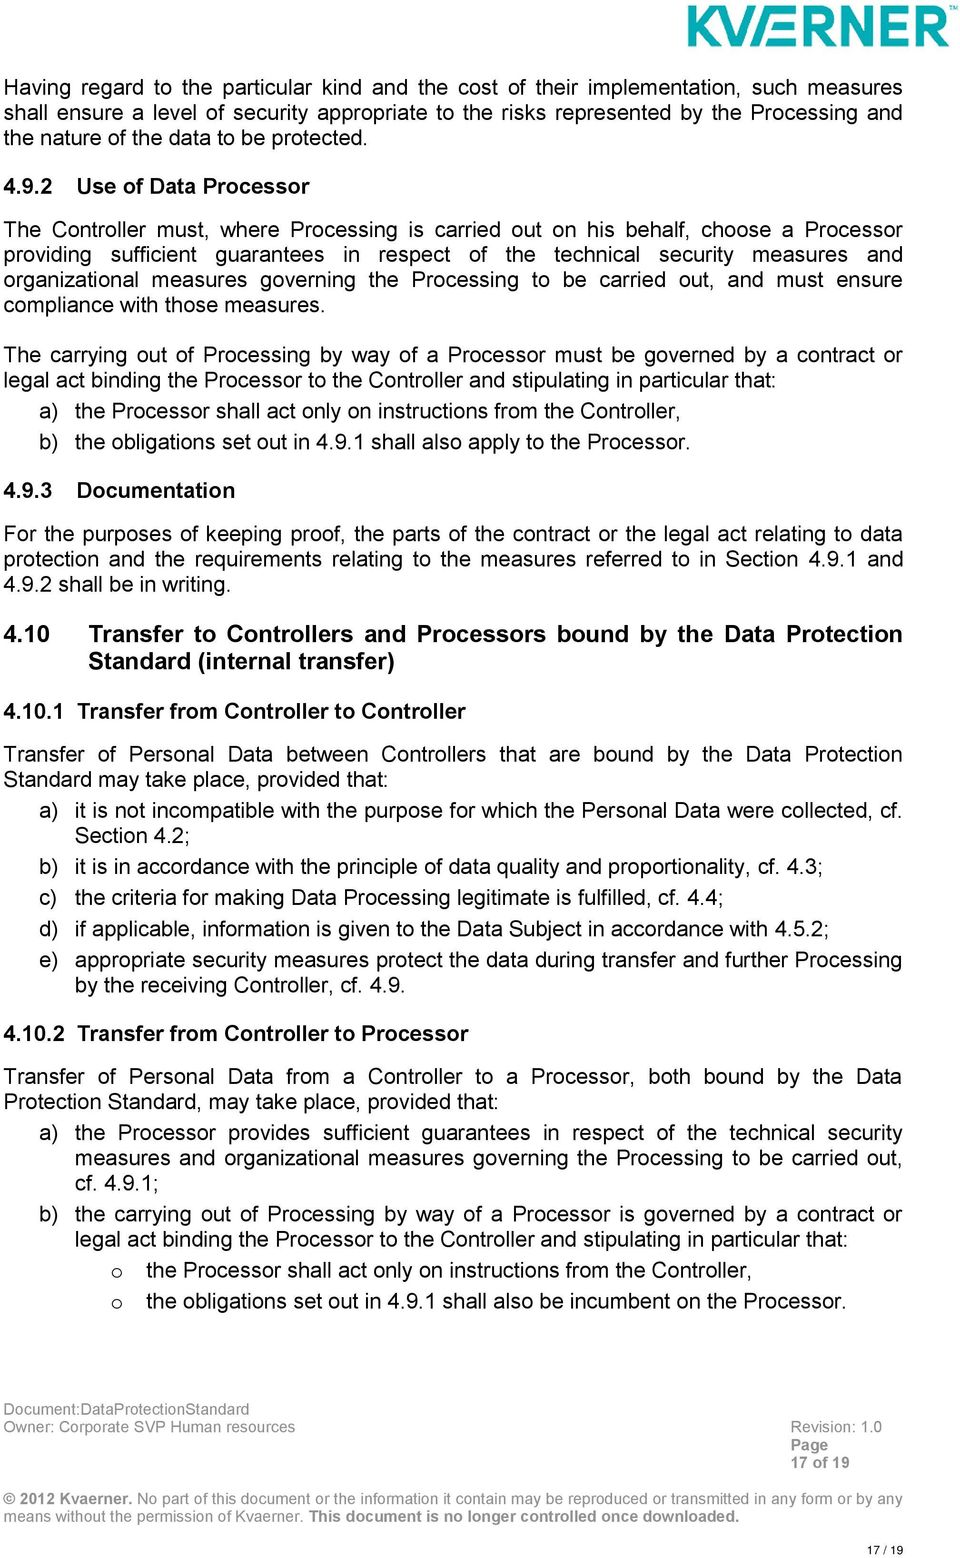 2 Use of Data Processor The Controller must, where Processing is carried out on his behalf, choose a Processor providing sufficient guarantees in respect of the technical security measures and